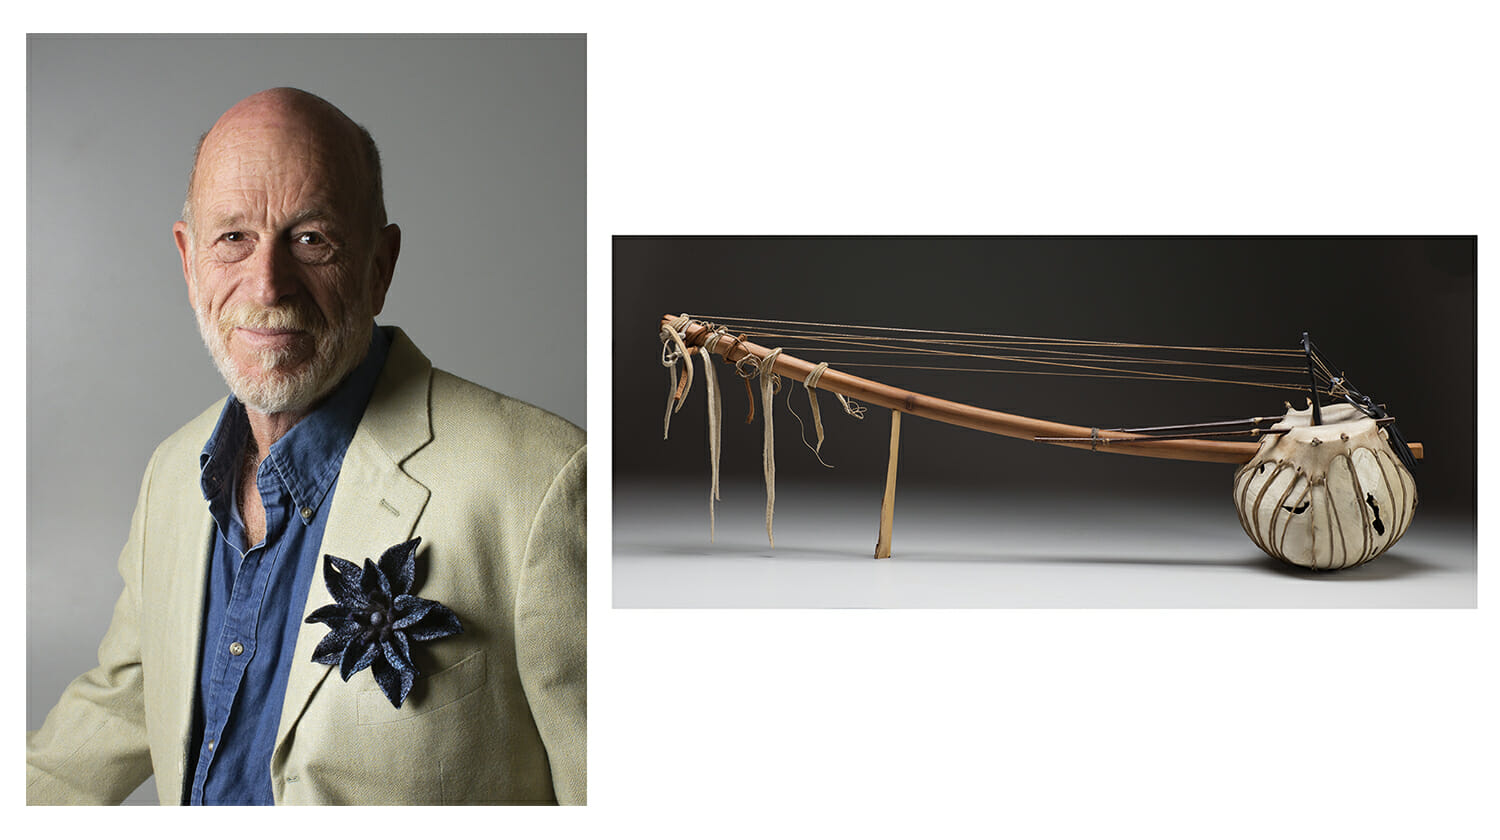 On the left is a man with a blue collared shirt and light cream blazer with a large blue floral pin on his jacket. he is bald with a short white beard. on the right is a handmade stringed instrument with a round body, long neck and leather hanging from the end.